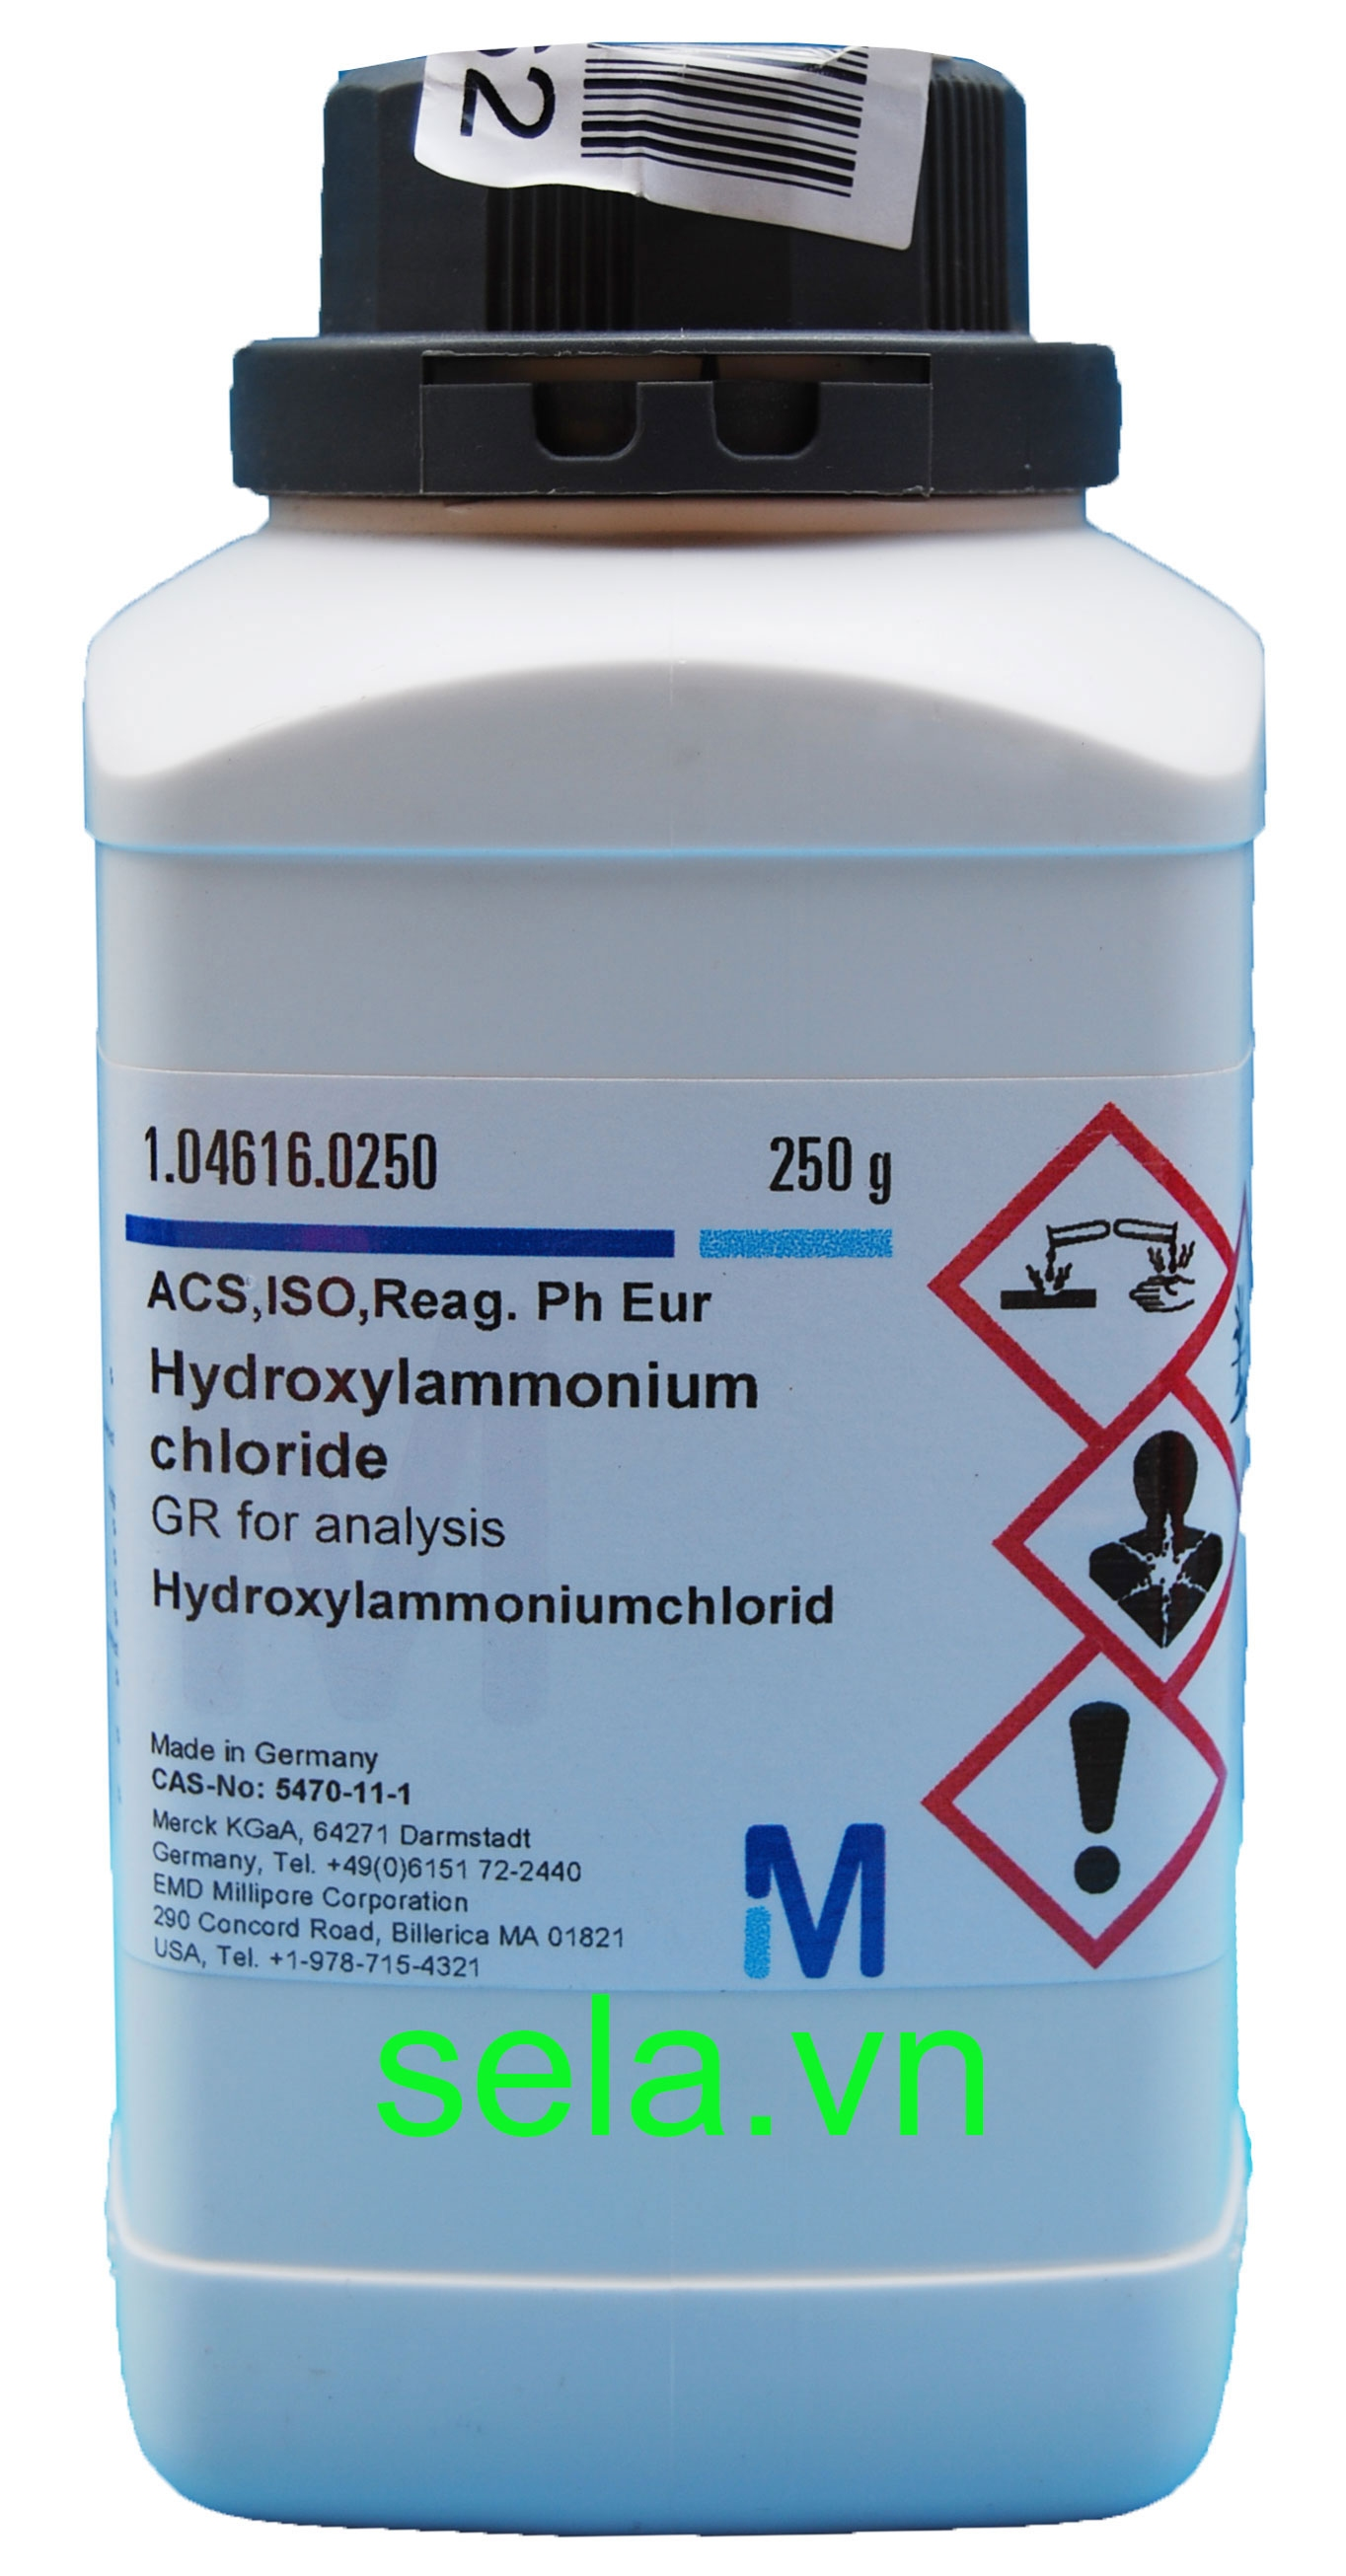 Hydroxylammonium chloride GR for analysis ACS,ISO,Reag. Ph Eur